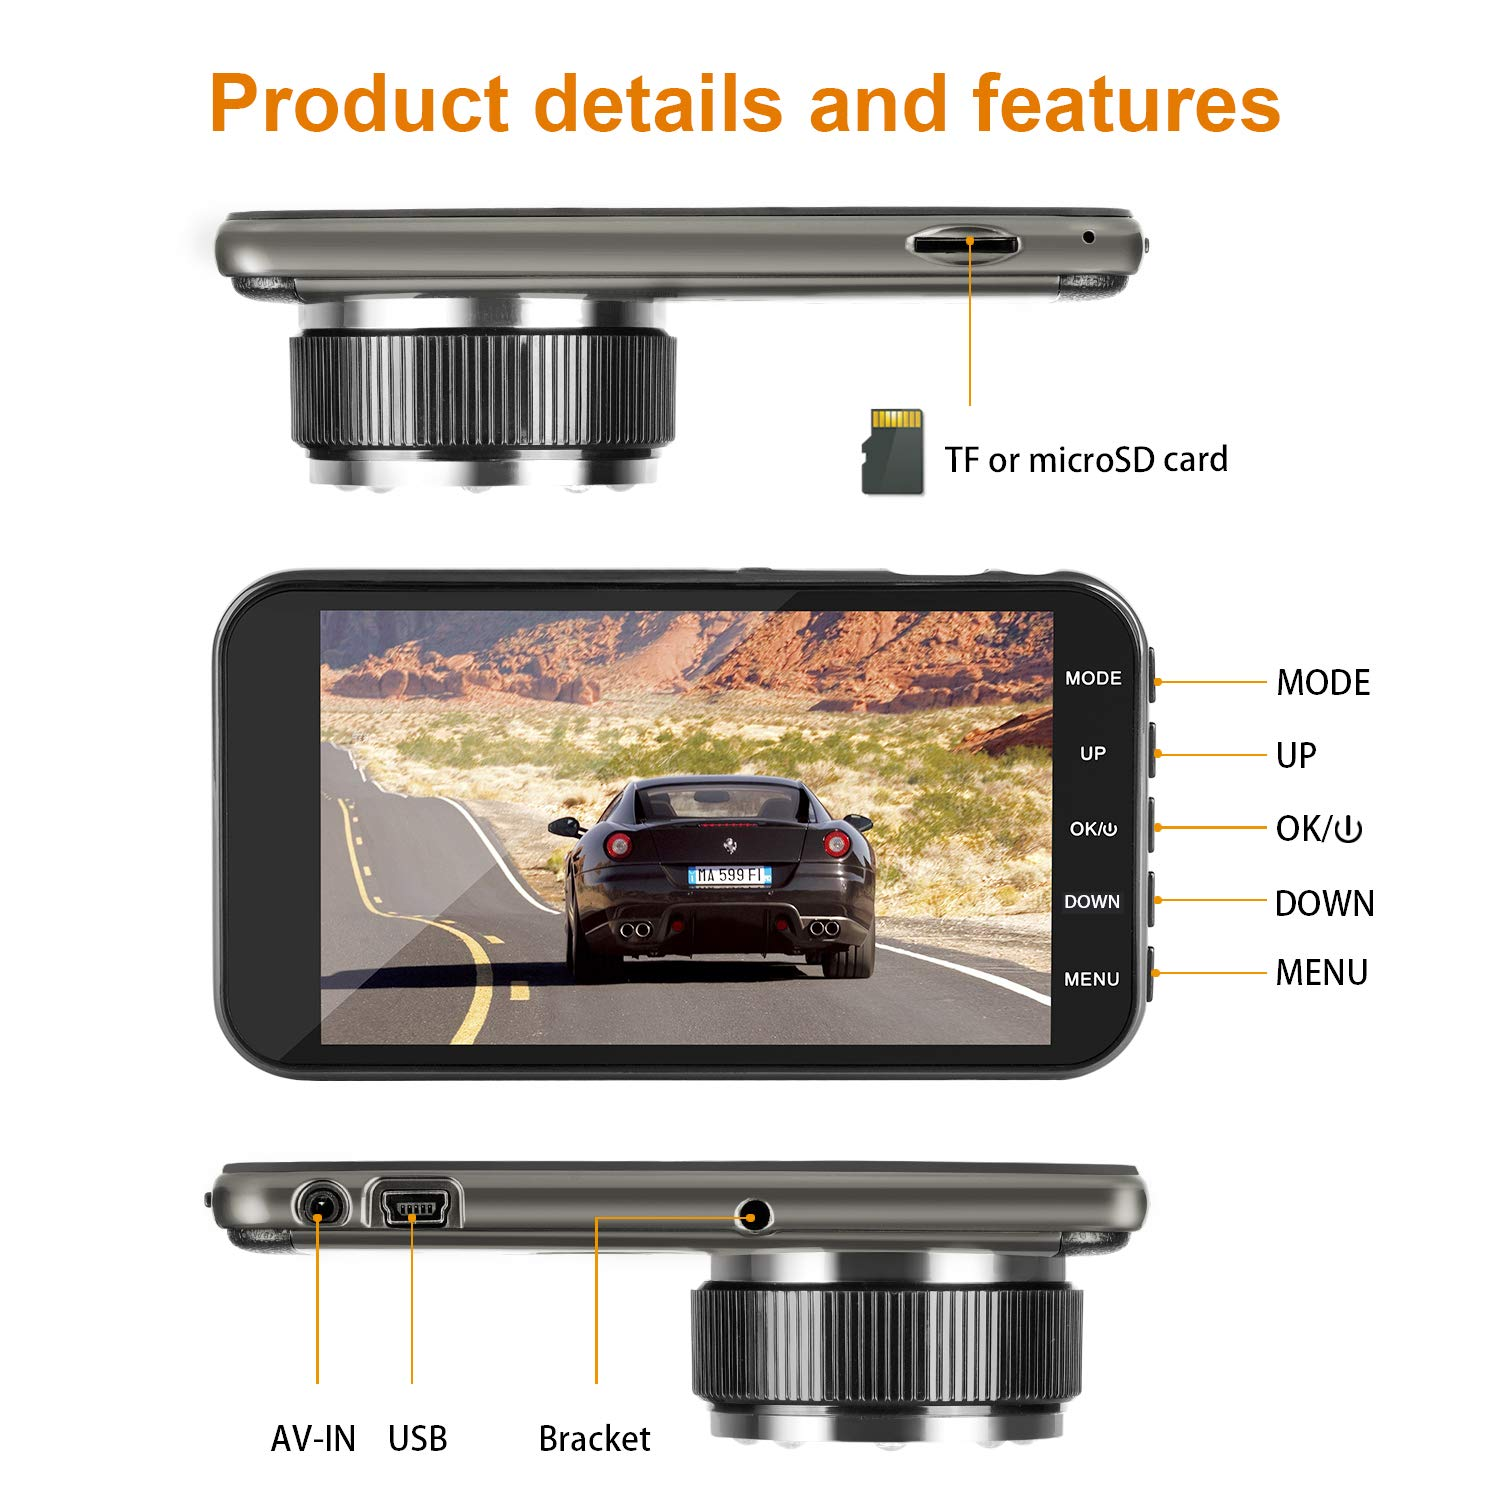 "Mi Yang FHD 1080P camera front and rear with night vision,2 channel 310/° wide angle lens 4/"" screen dashboard cam Dual dash car cam G-senor Parking monitor,motion detection.for trucks uber driver miyuog 4350447438"